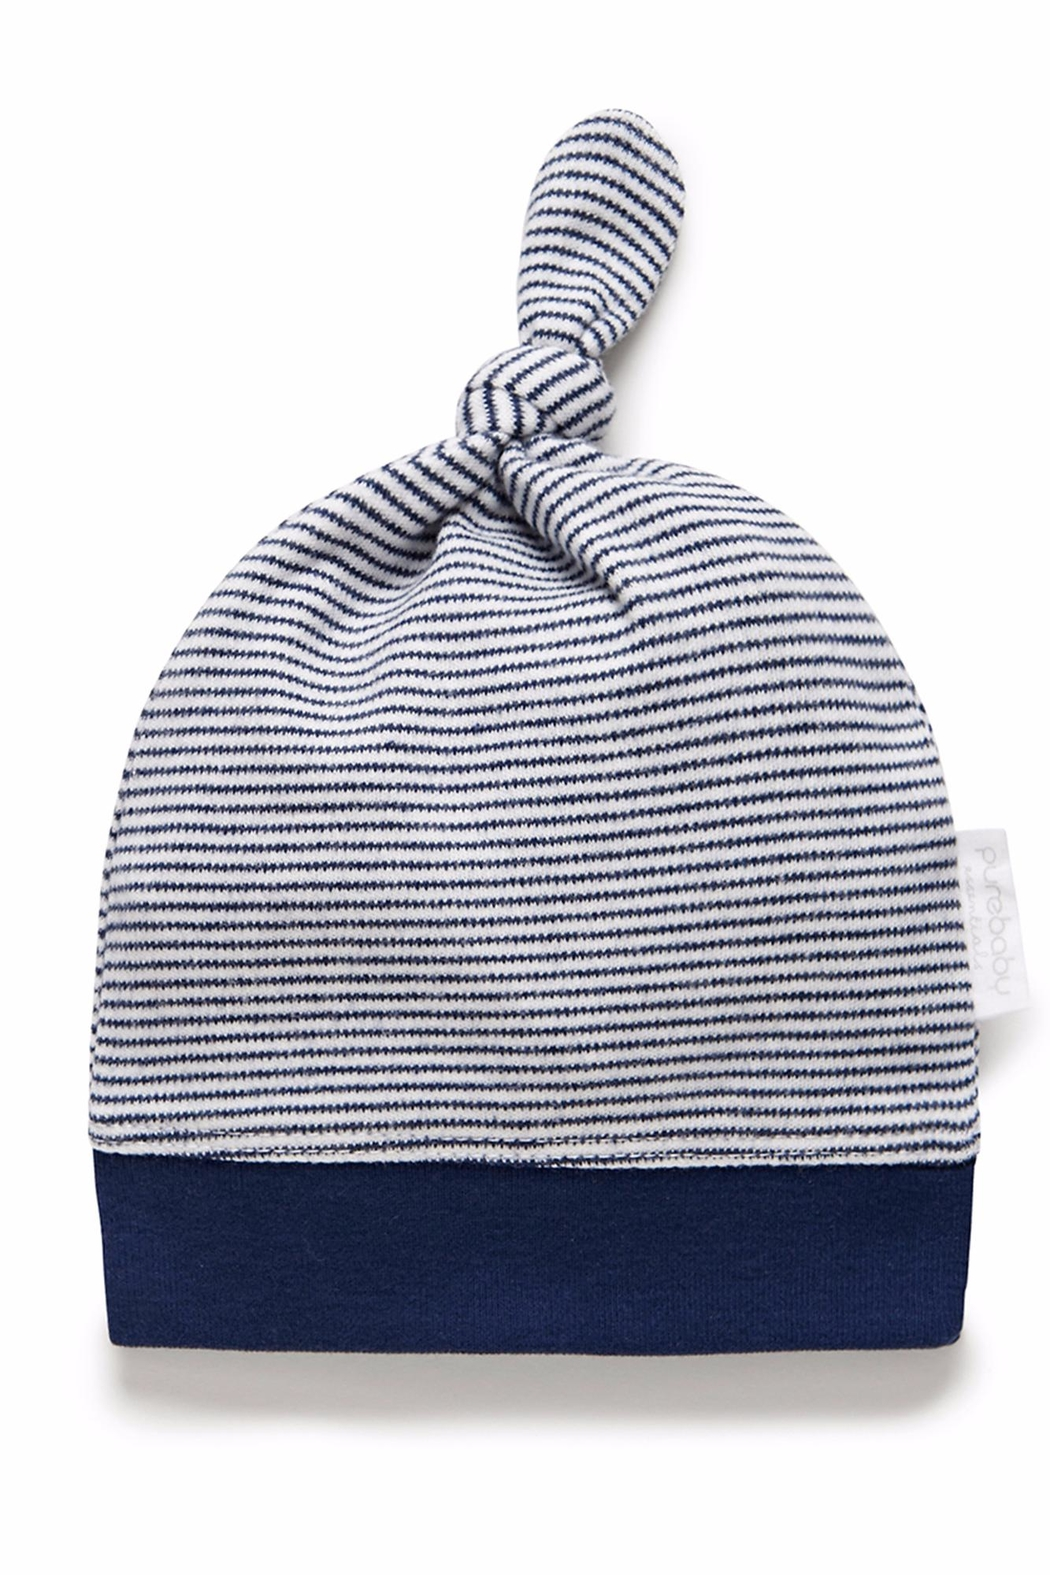 b271a148ed8 Purebaby Knot Hat from Melbourne by PureBaby — Shoptiques